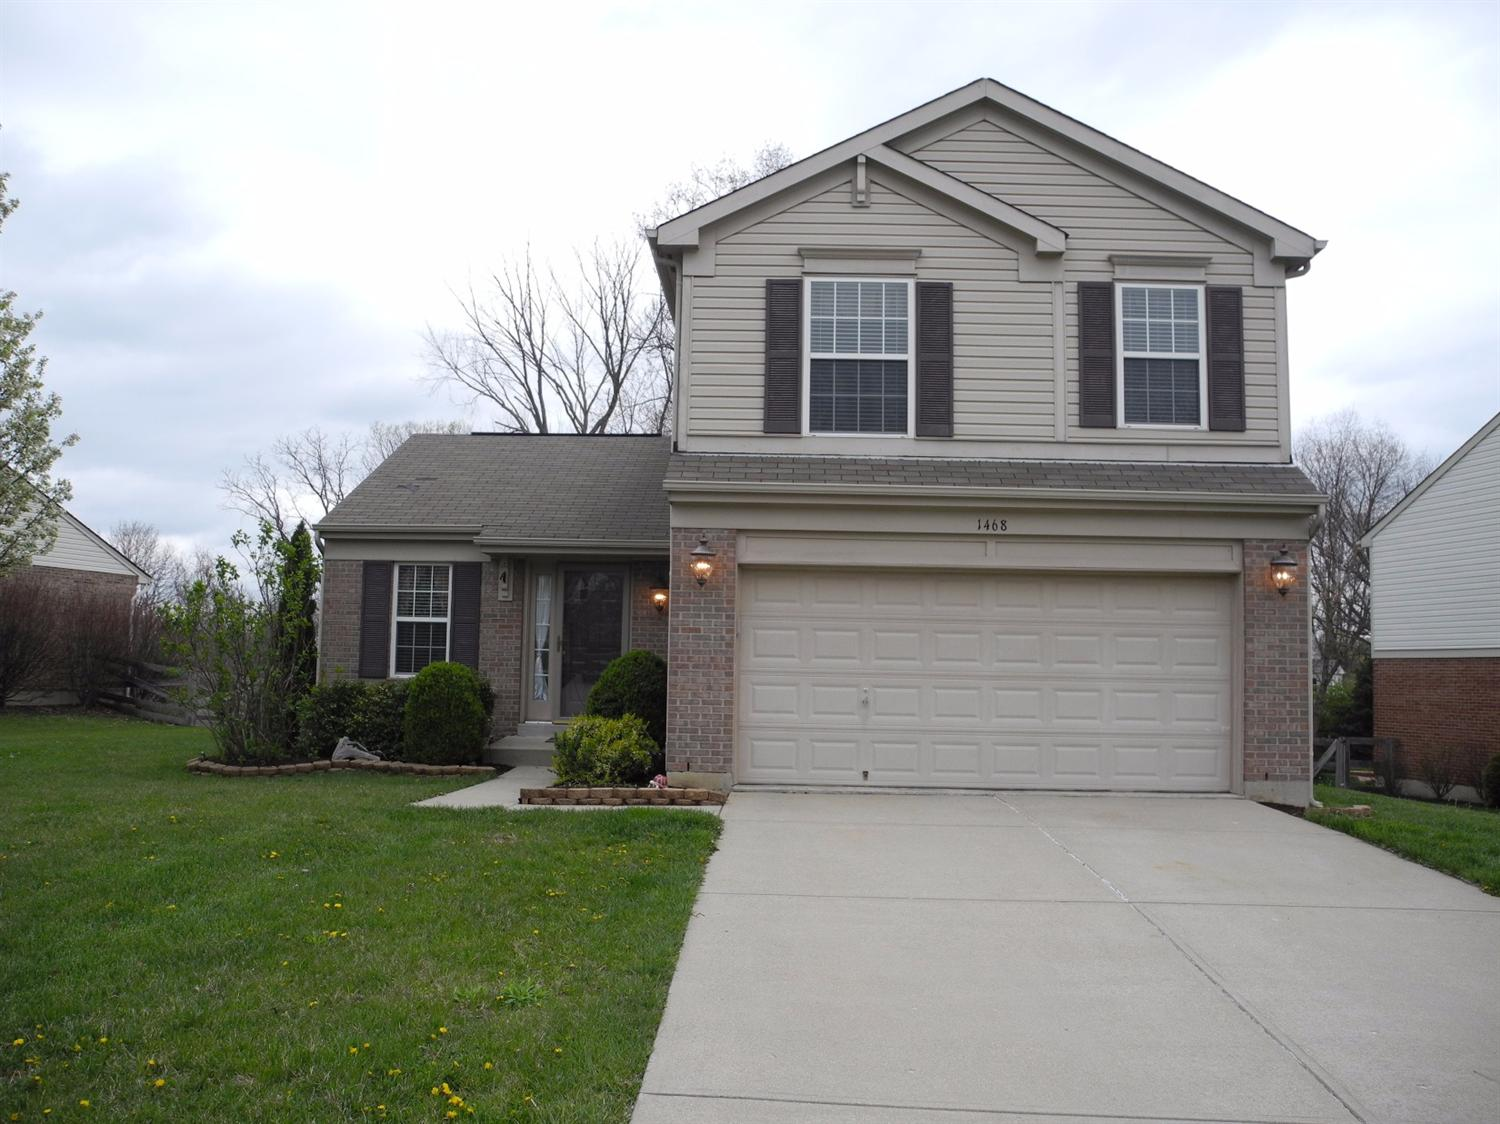 Photo 1 for 1468 Sequoia Dr Hebron, KY 41048